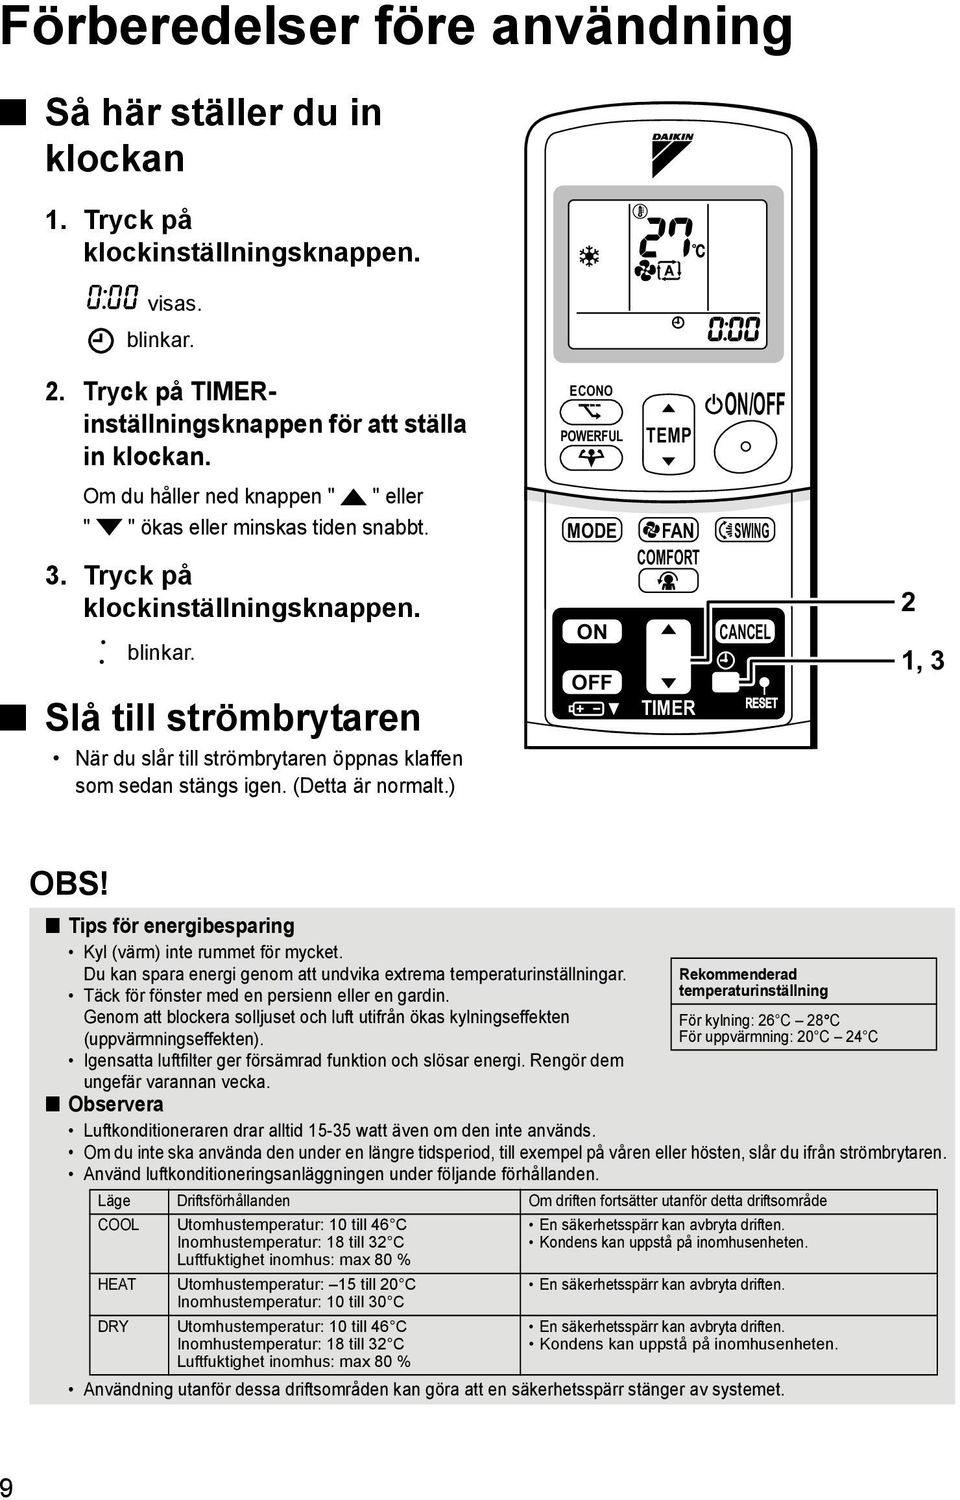 Slå till strömbrytaren När du slår till strömbrytaren öppnas klaffen som sedan stängs igen. (Detta är normalt.) ECONO POWERFUL TEMP ON/OFF MODE FAN SWING COMFORT ON CANCEL OFF TIMER 2 1, 3 OBS!